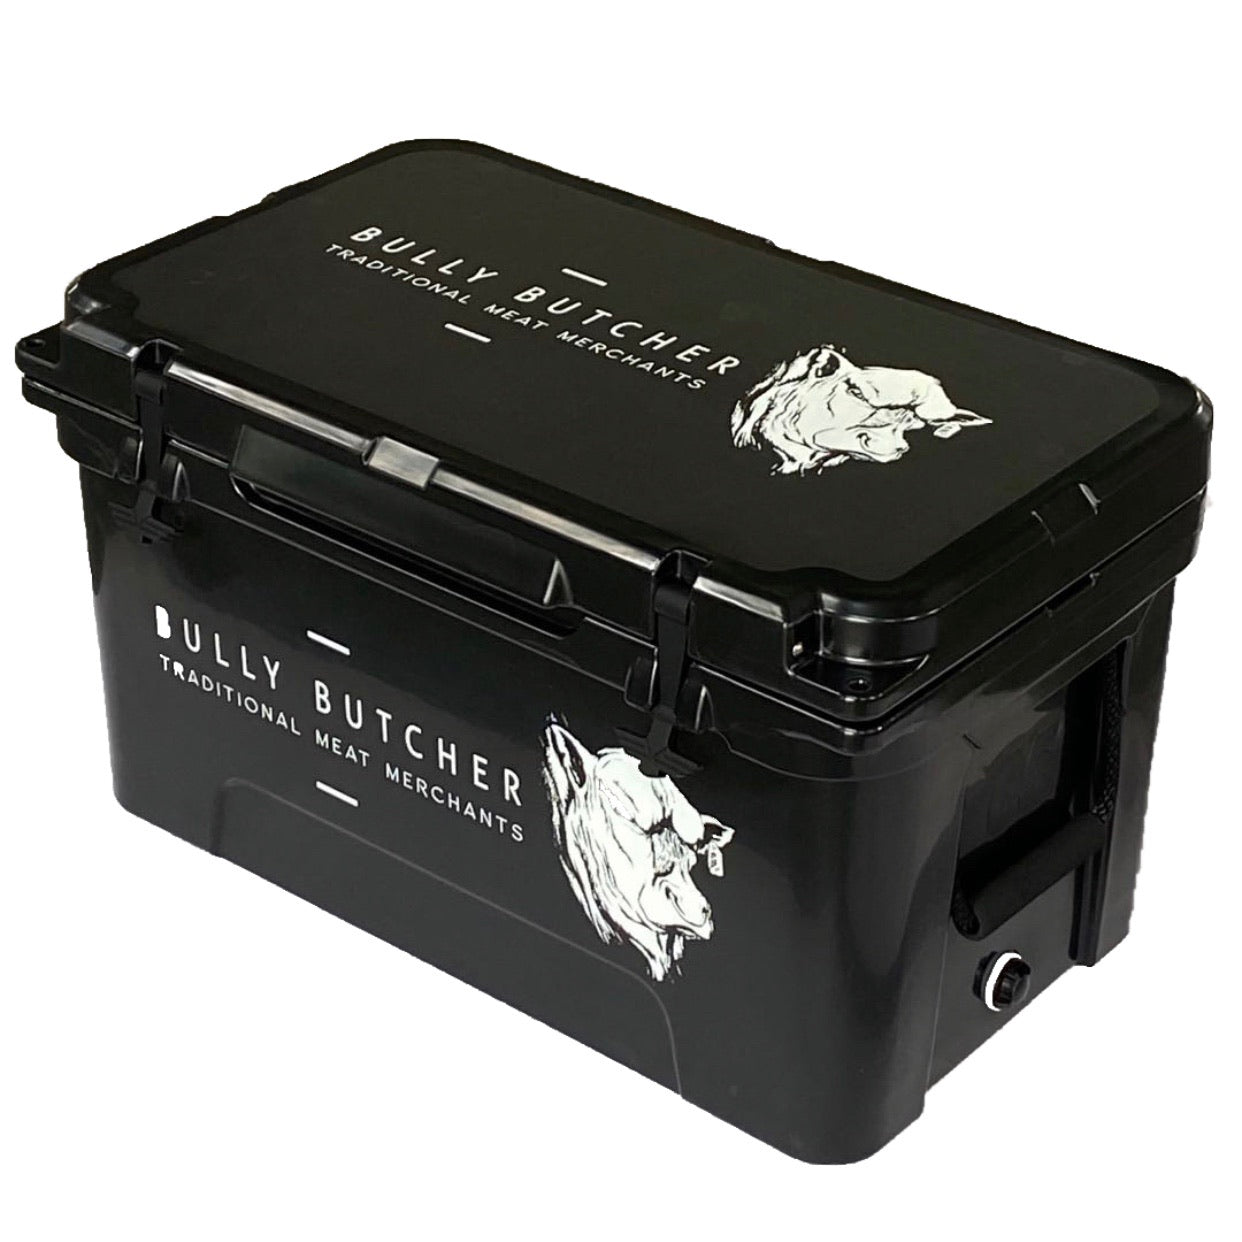 Bully Butcher 65 Esky